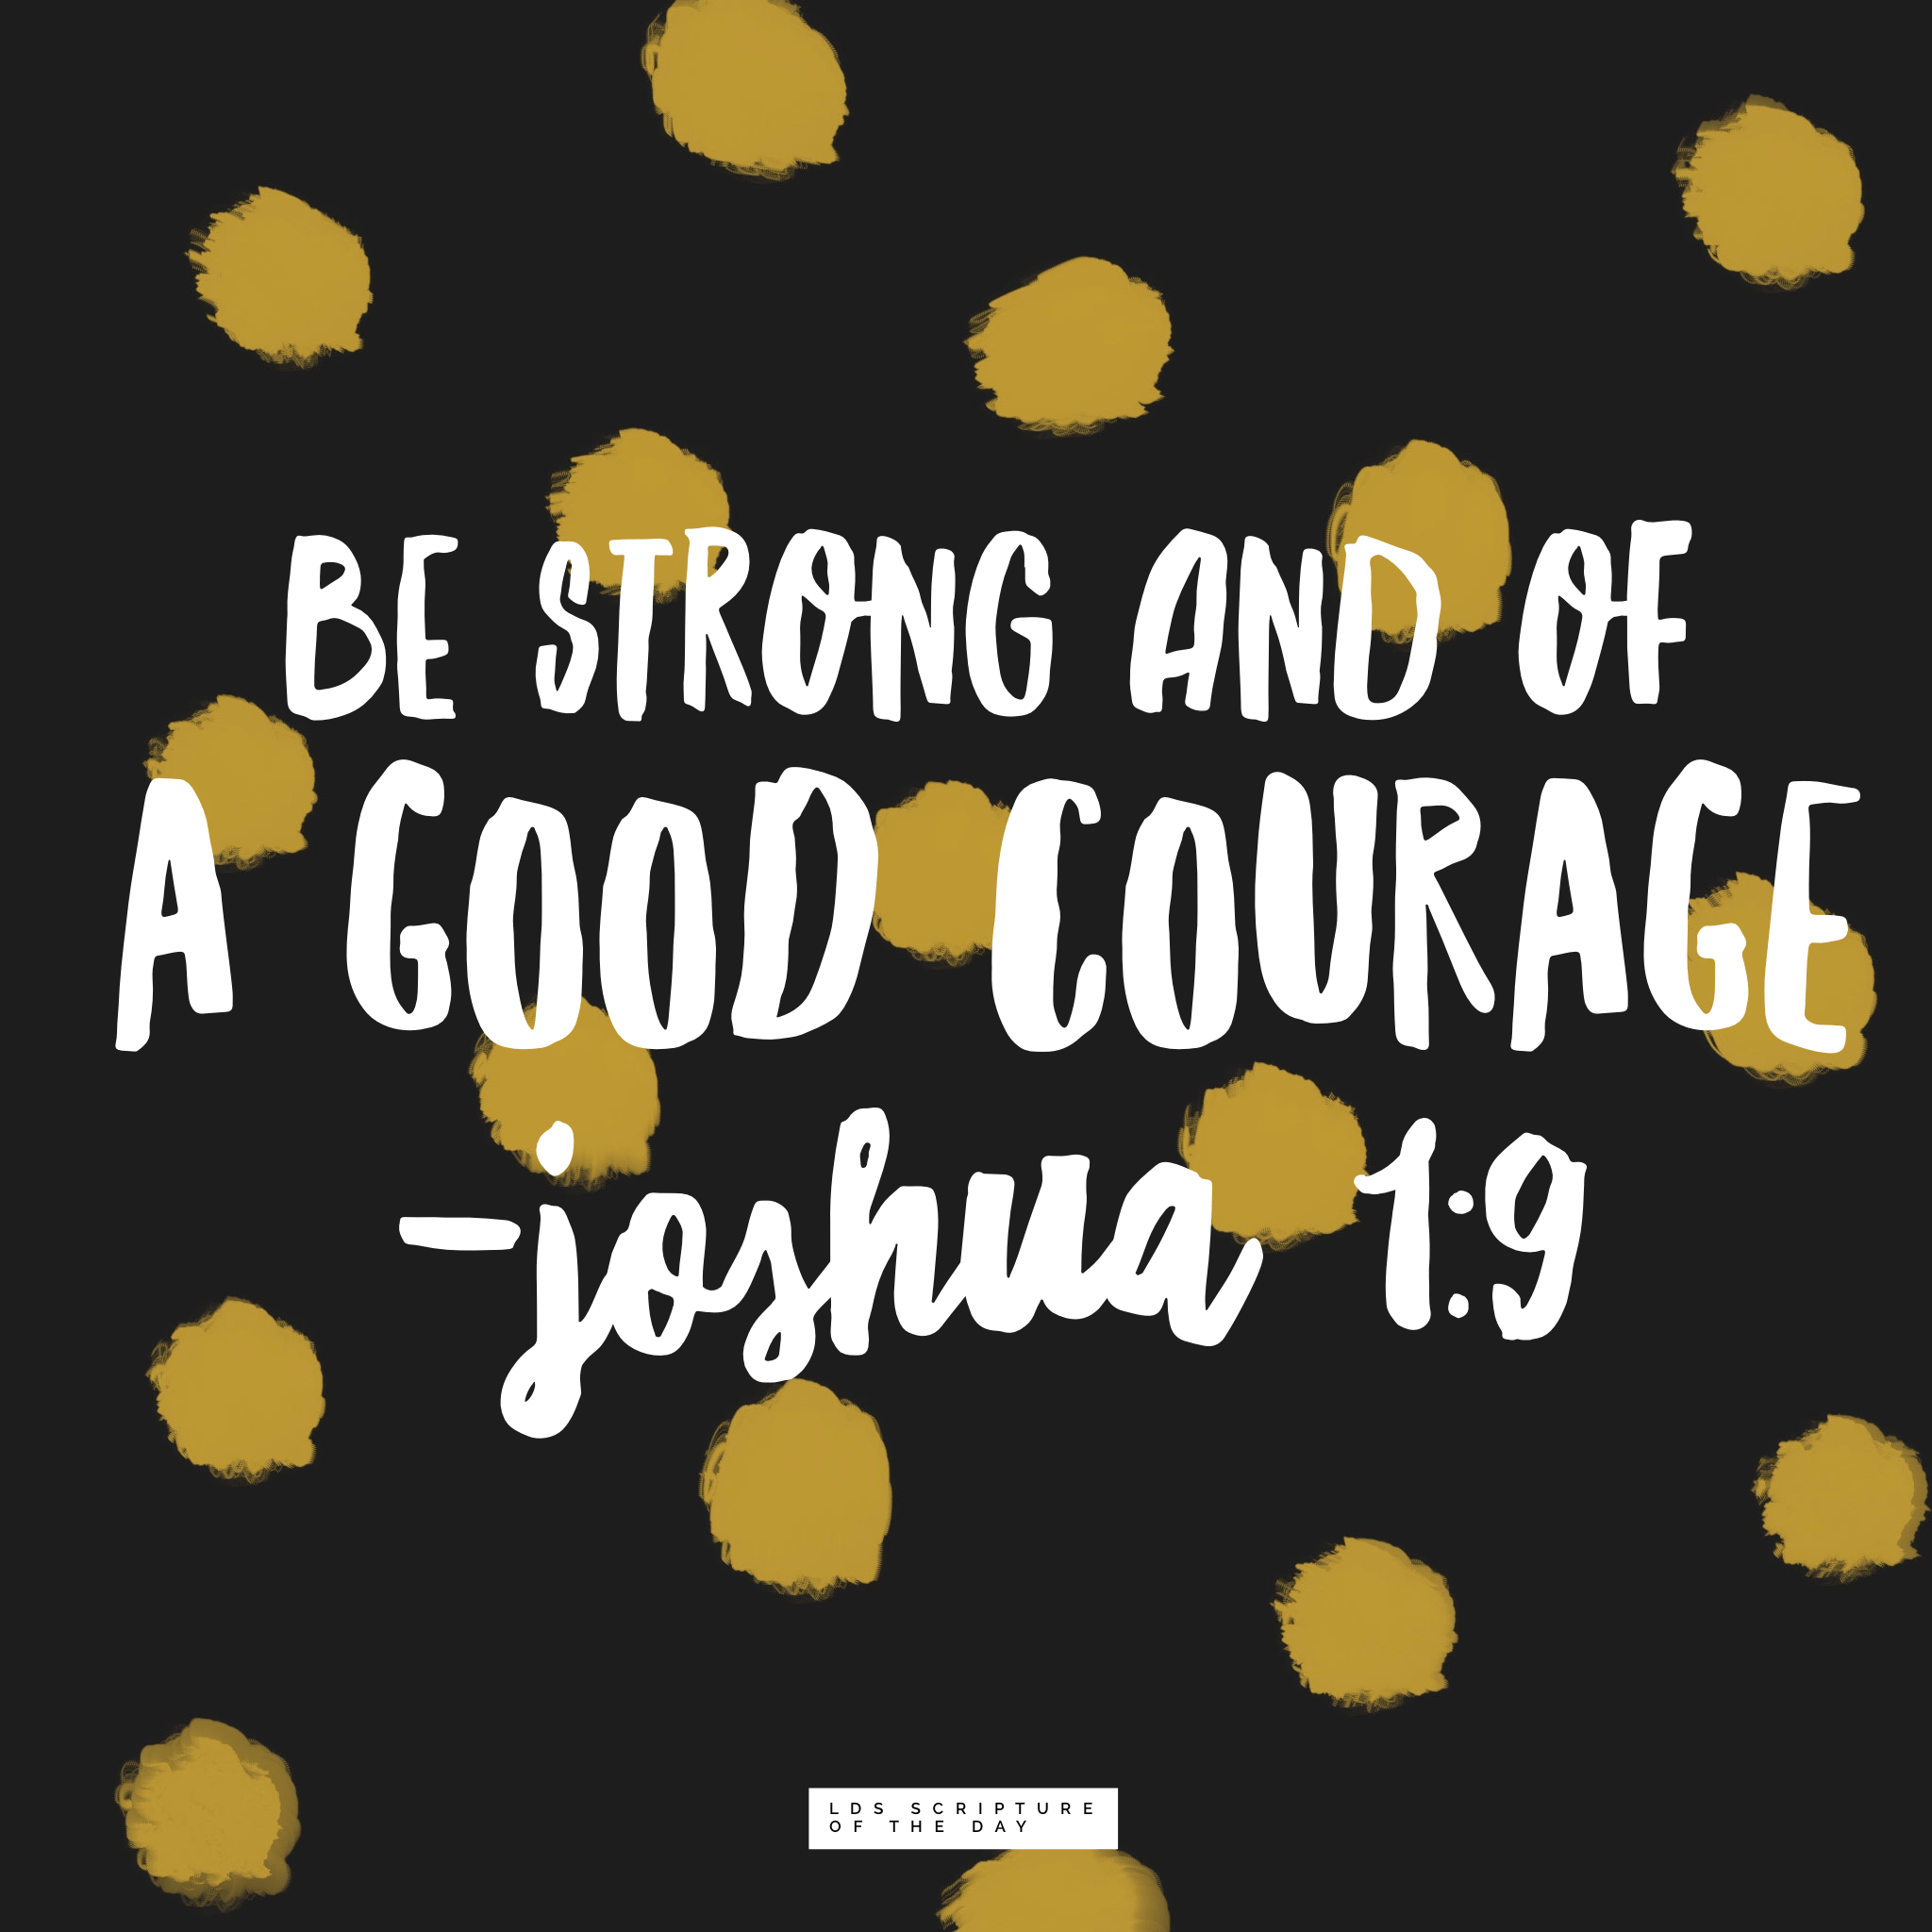 Be strong and of a good courage - Joshua 1:9